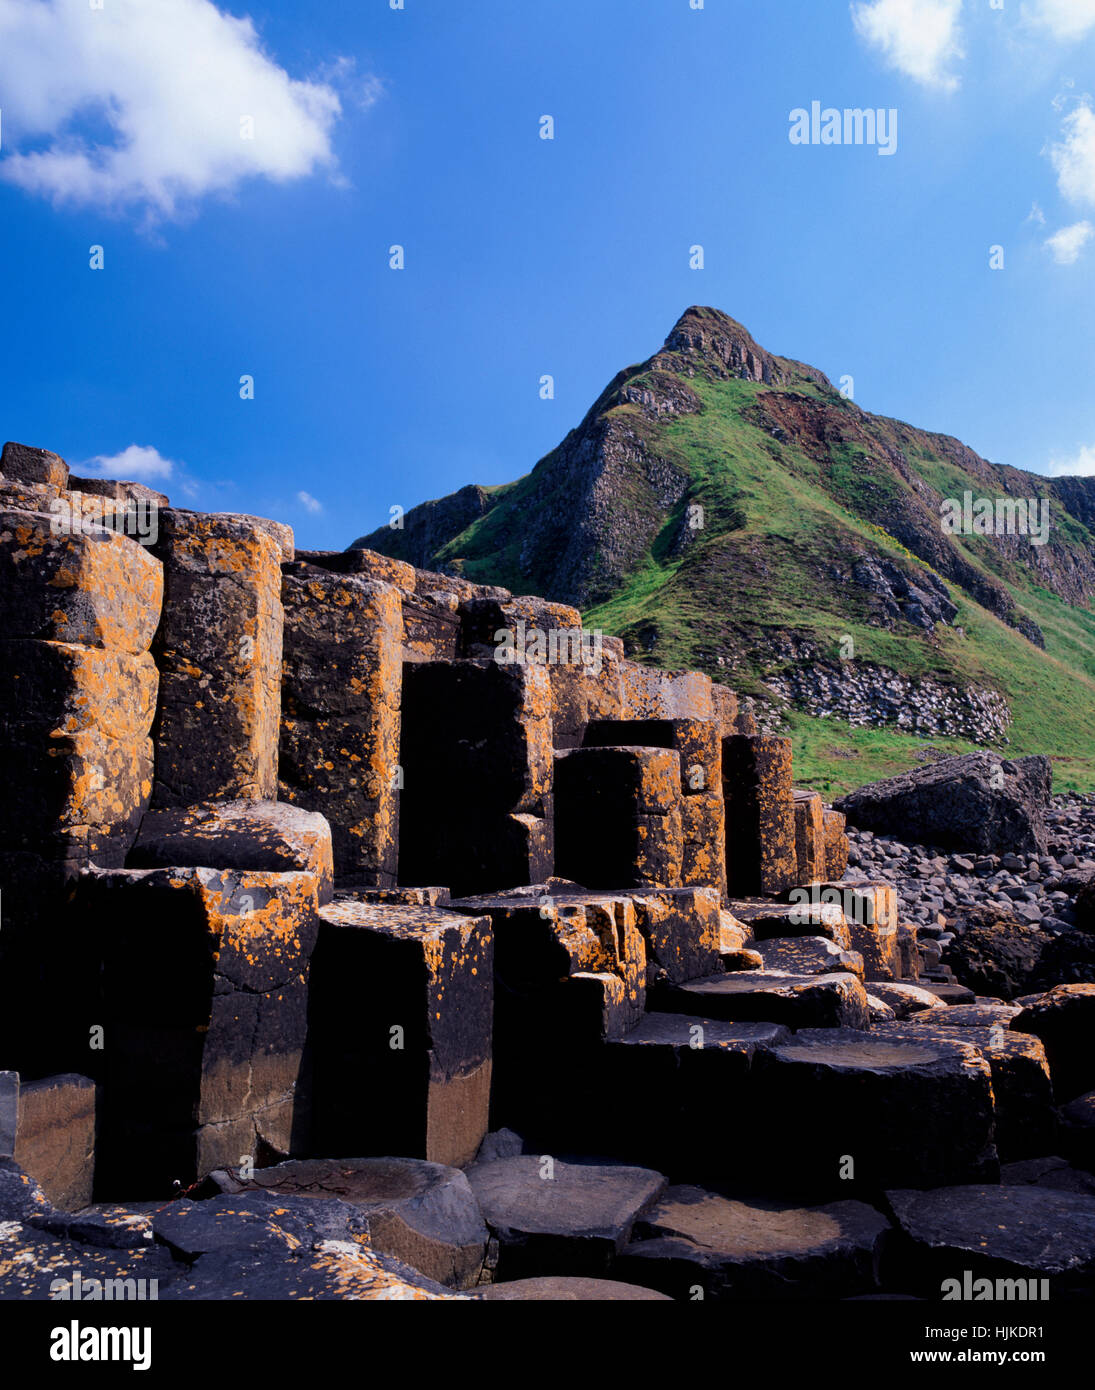 Giants Causeway, County Antrim, Northern Ireland, UK - Stock Image